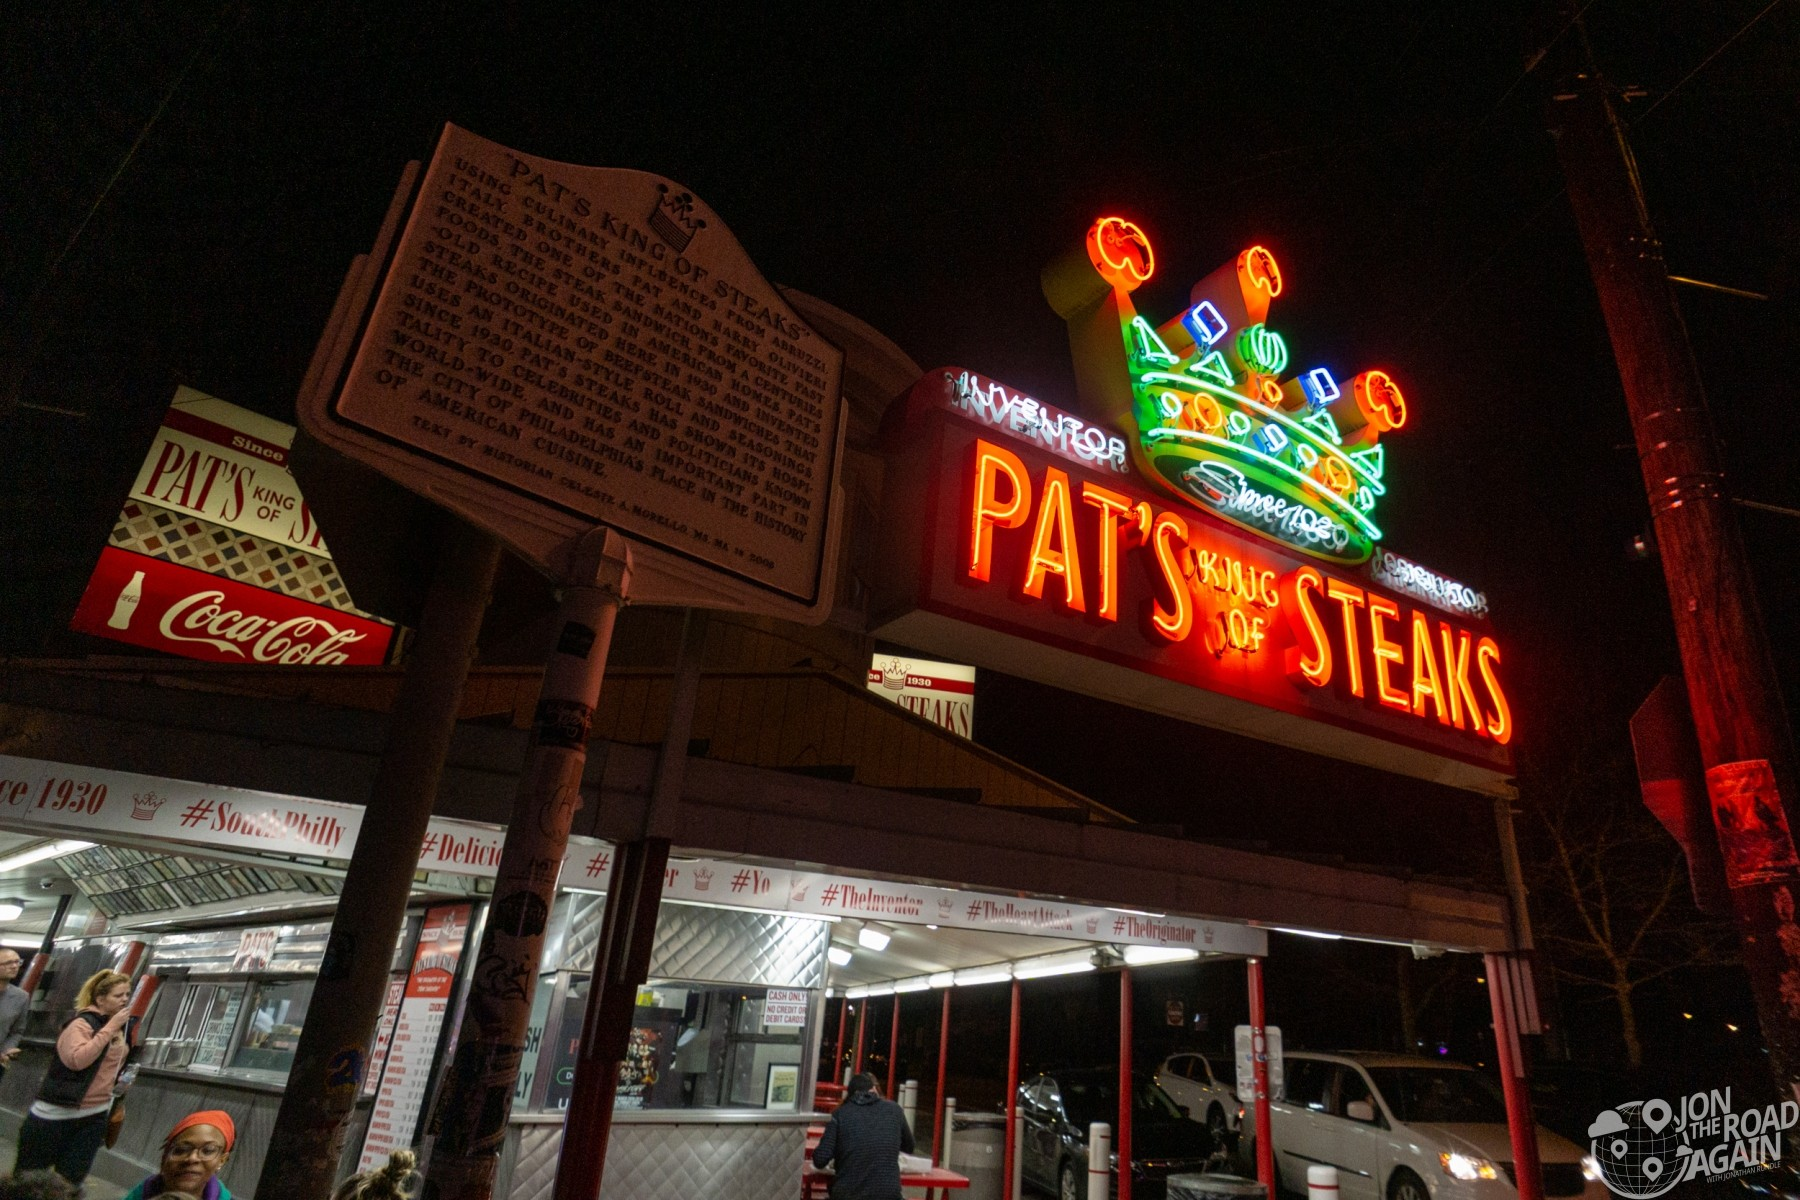 Pat's King of Steaks Sign